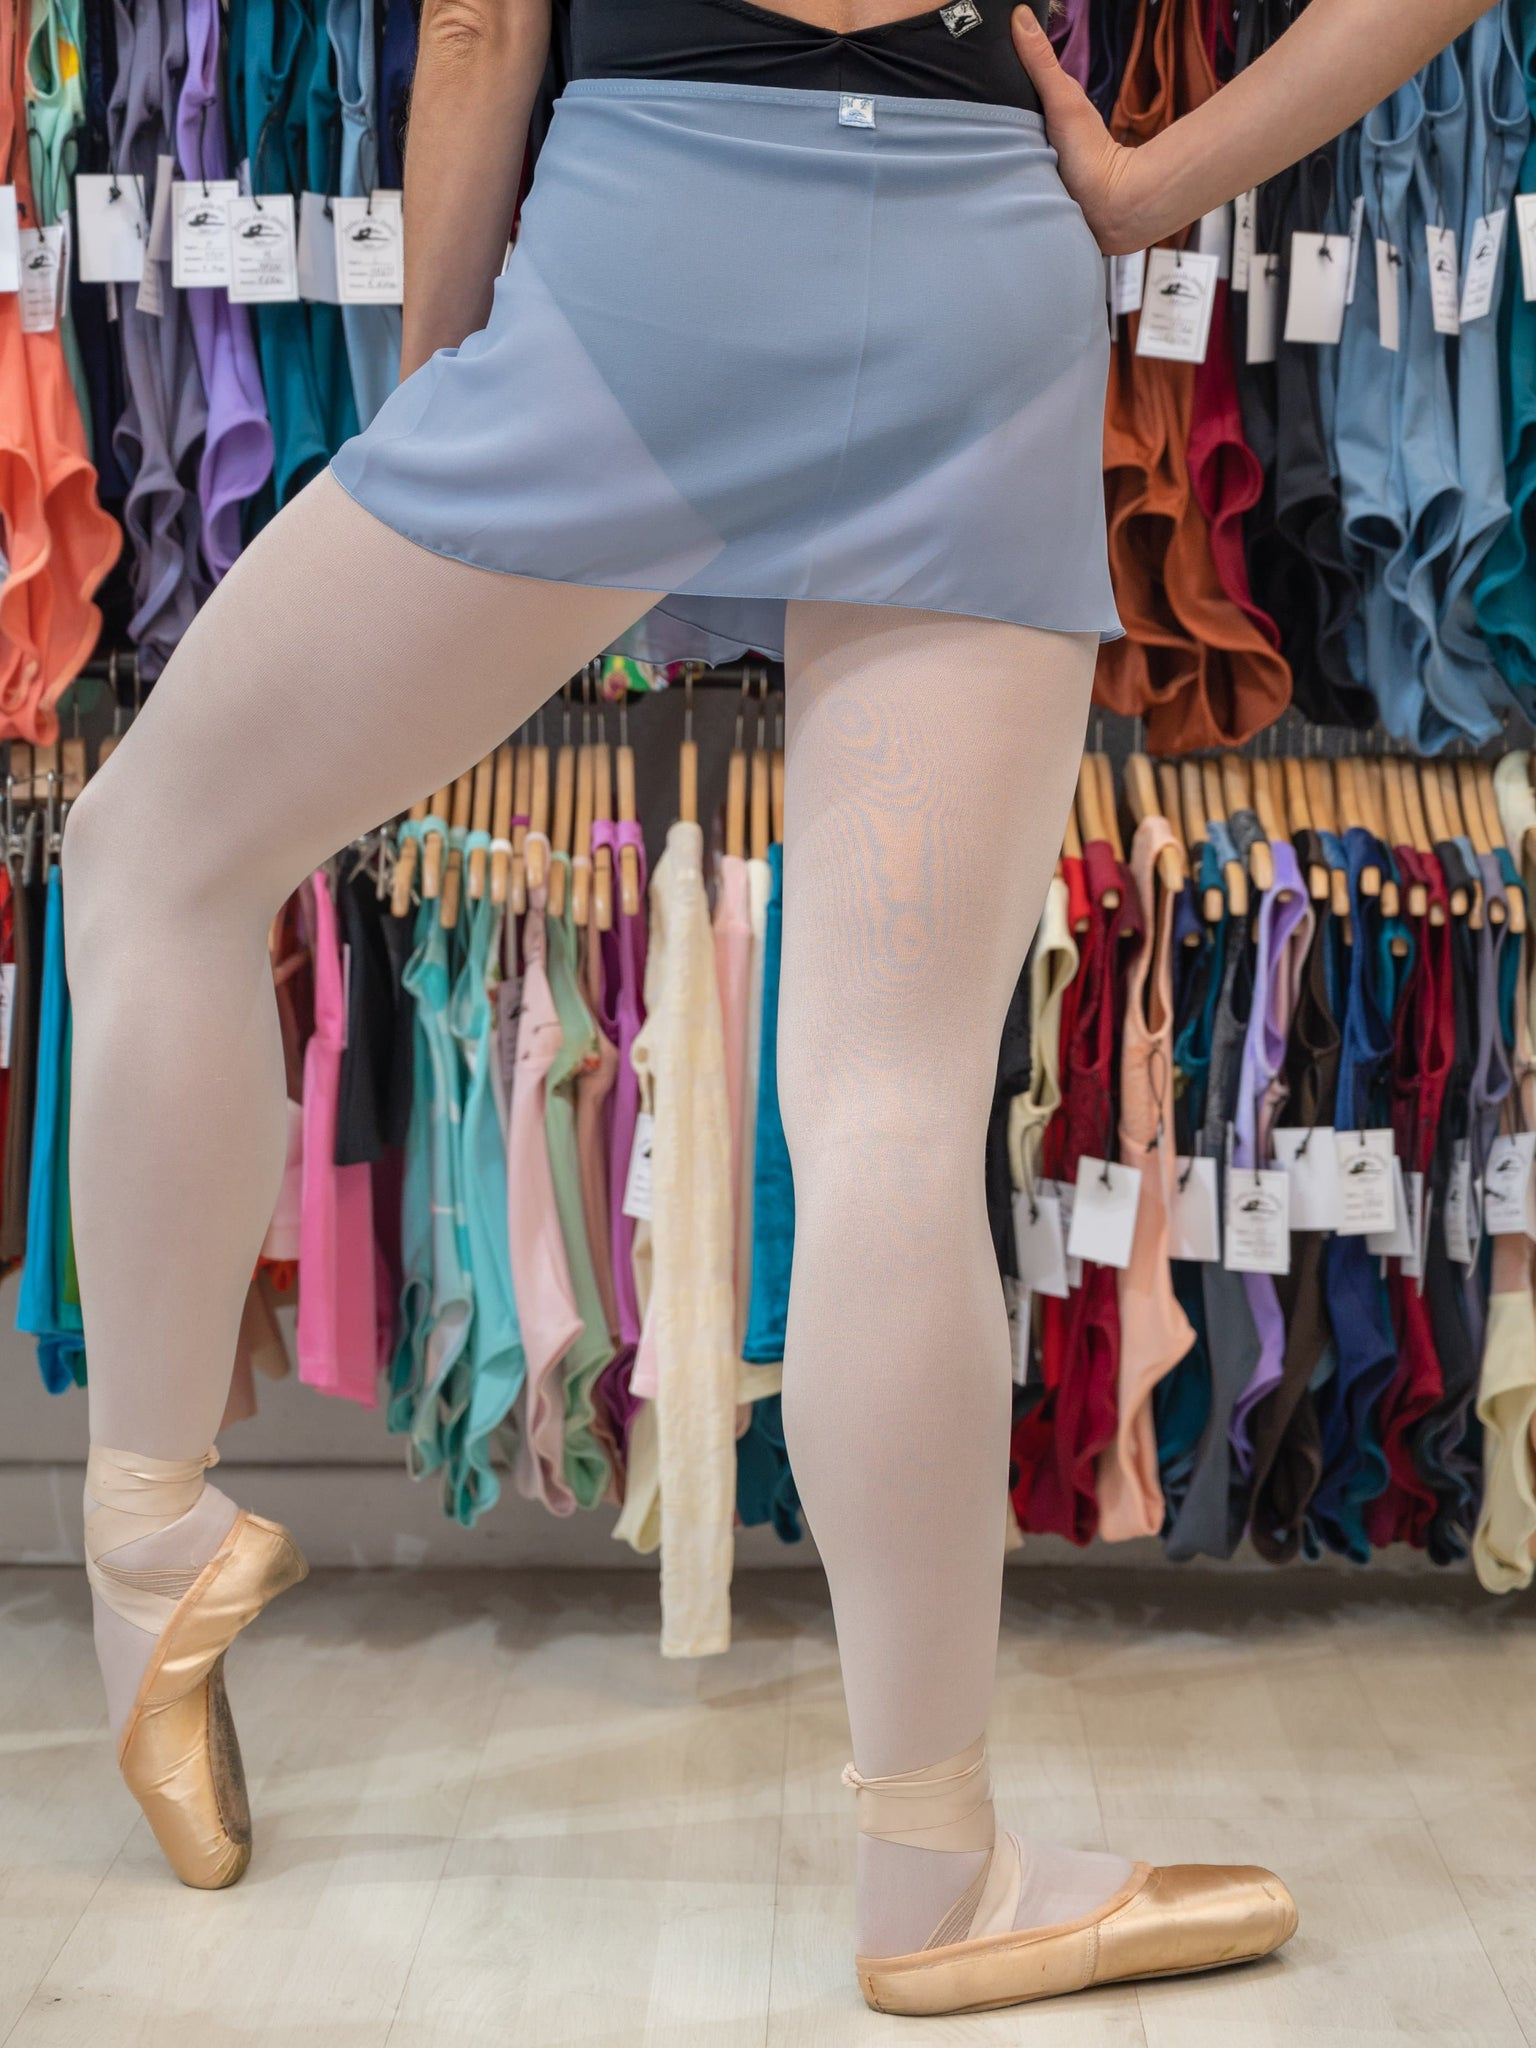 Light ash wrap ballet short skirt - ballet skirts for girls and women by Atelier della Danza MP